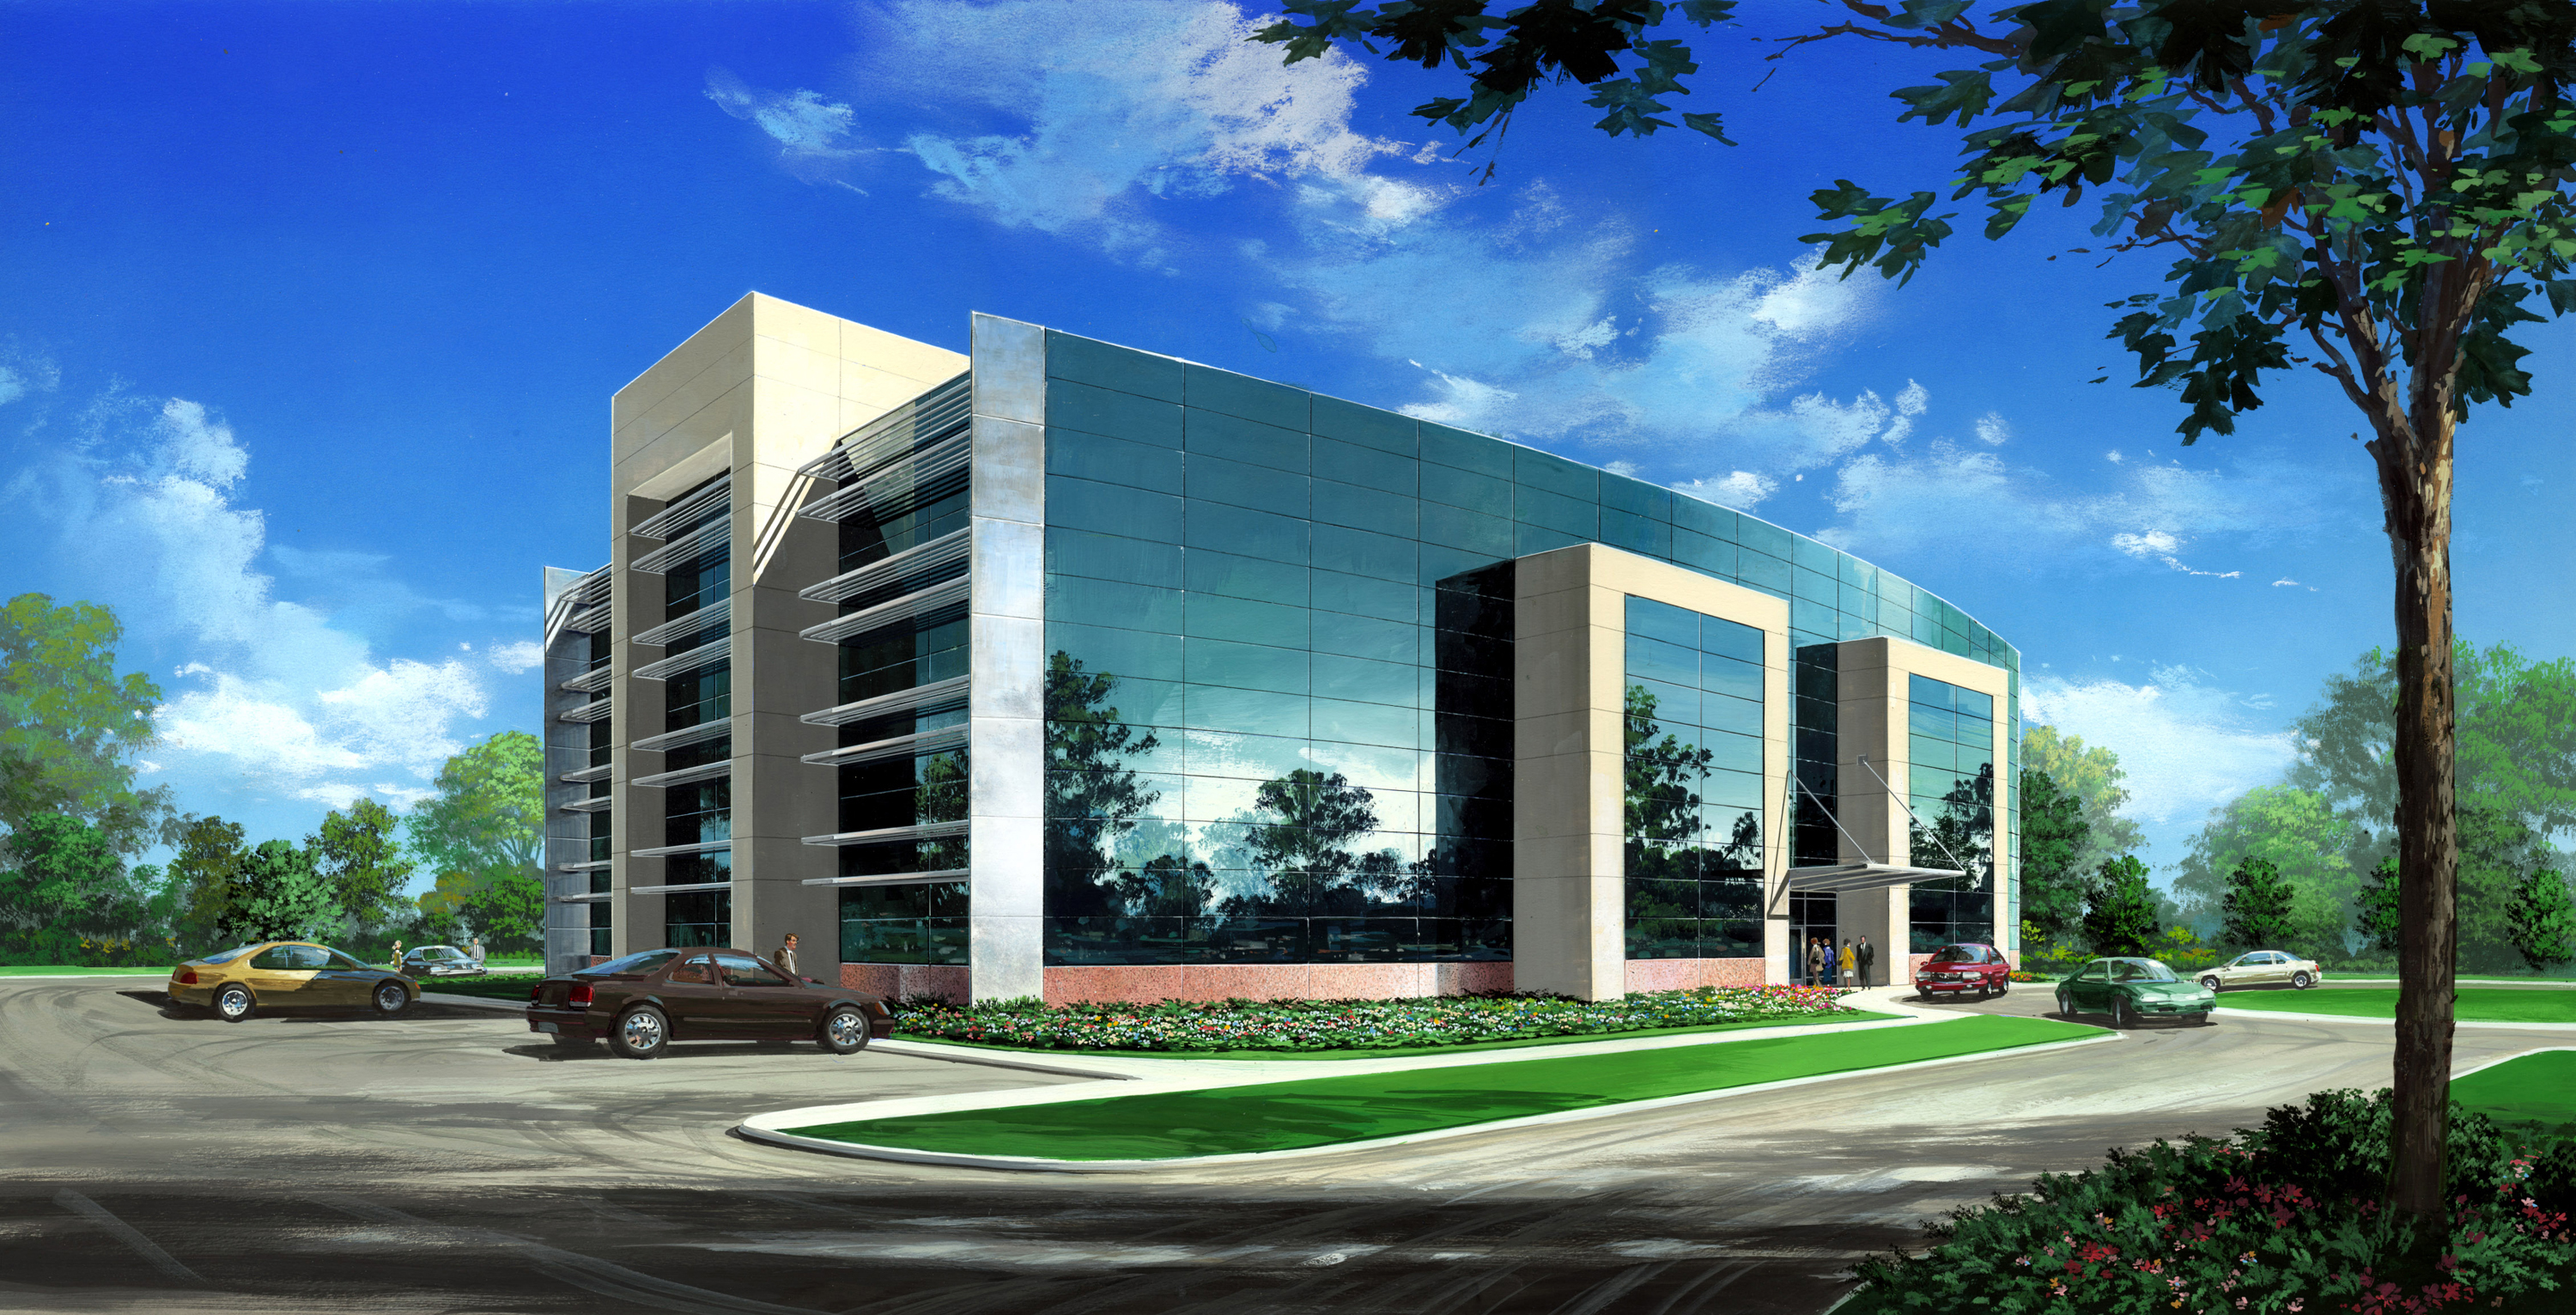 Nasa Amarshall Center To Break Ground June 10 On New